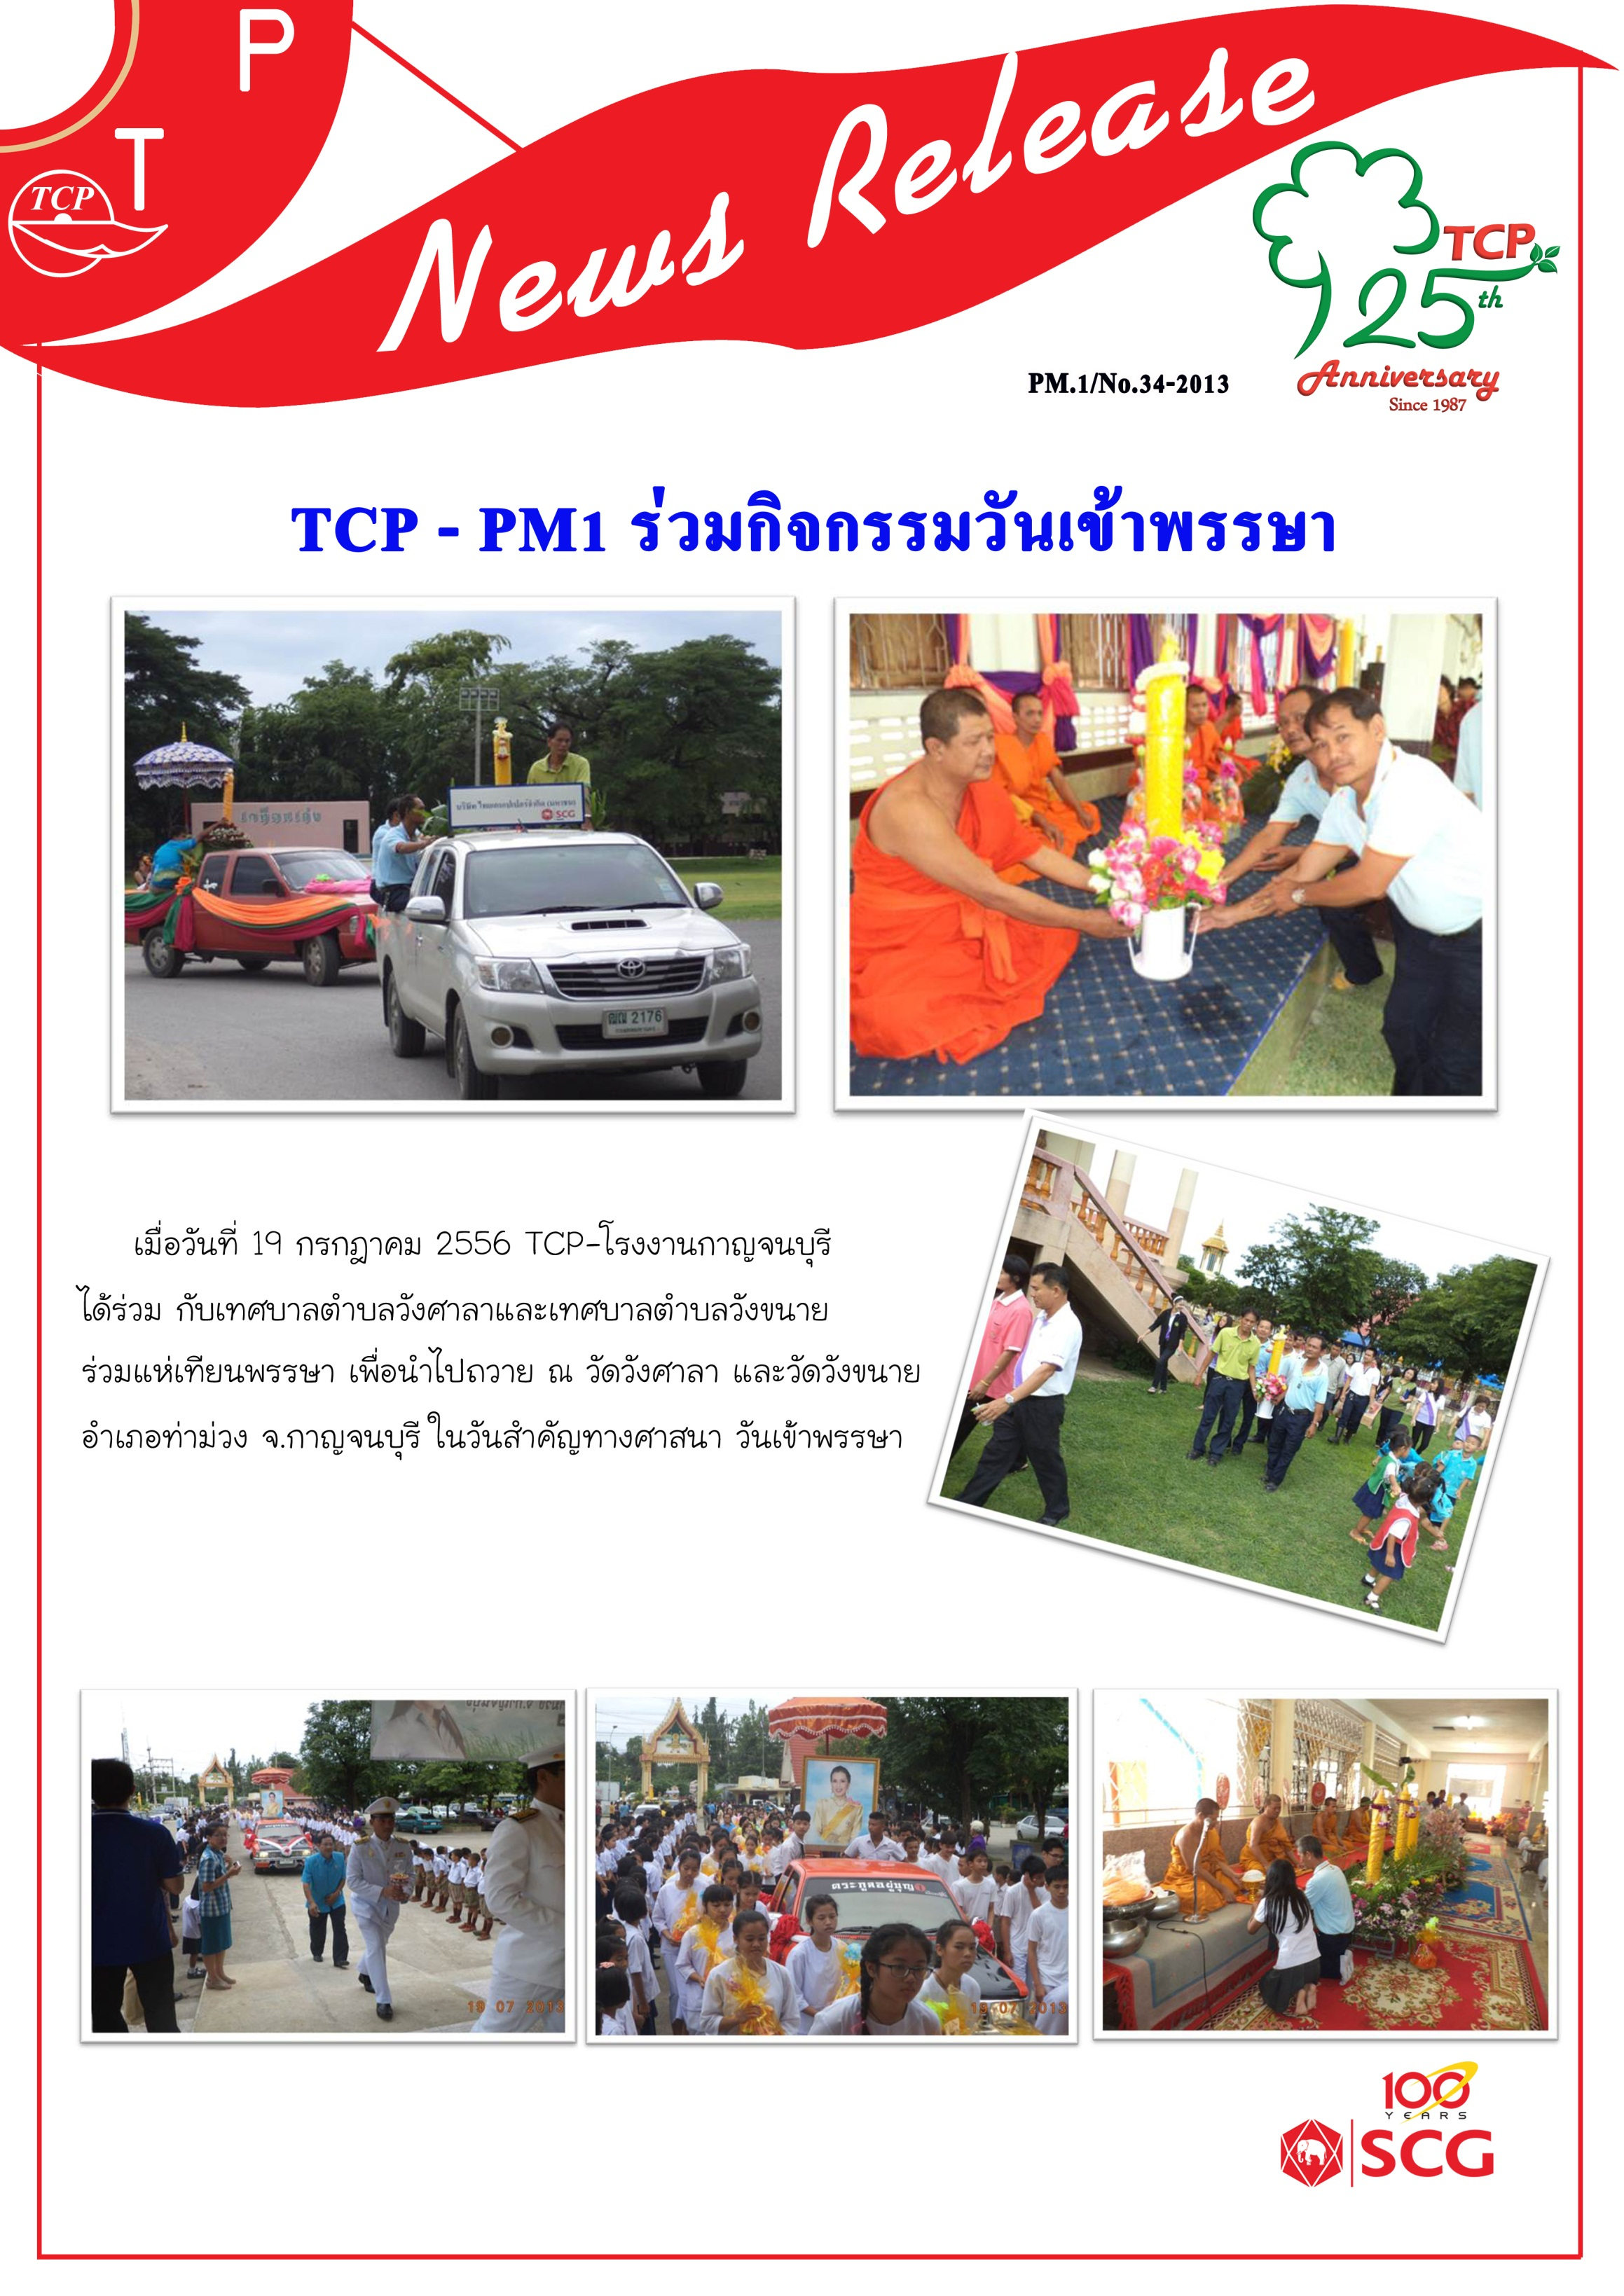 tcp1_news_release__no.34.jpg